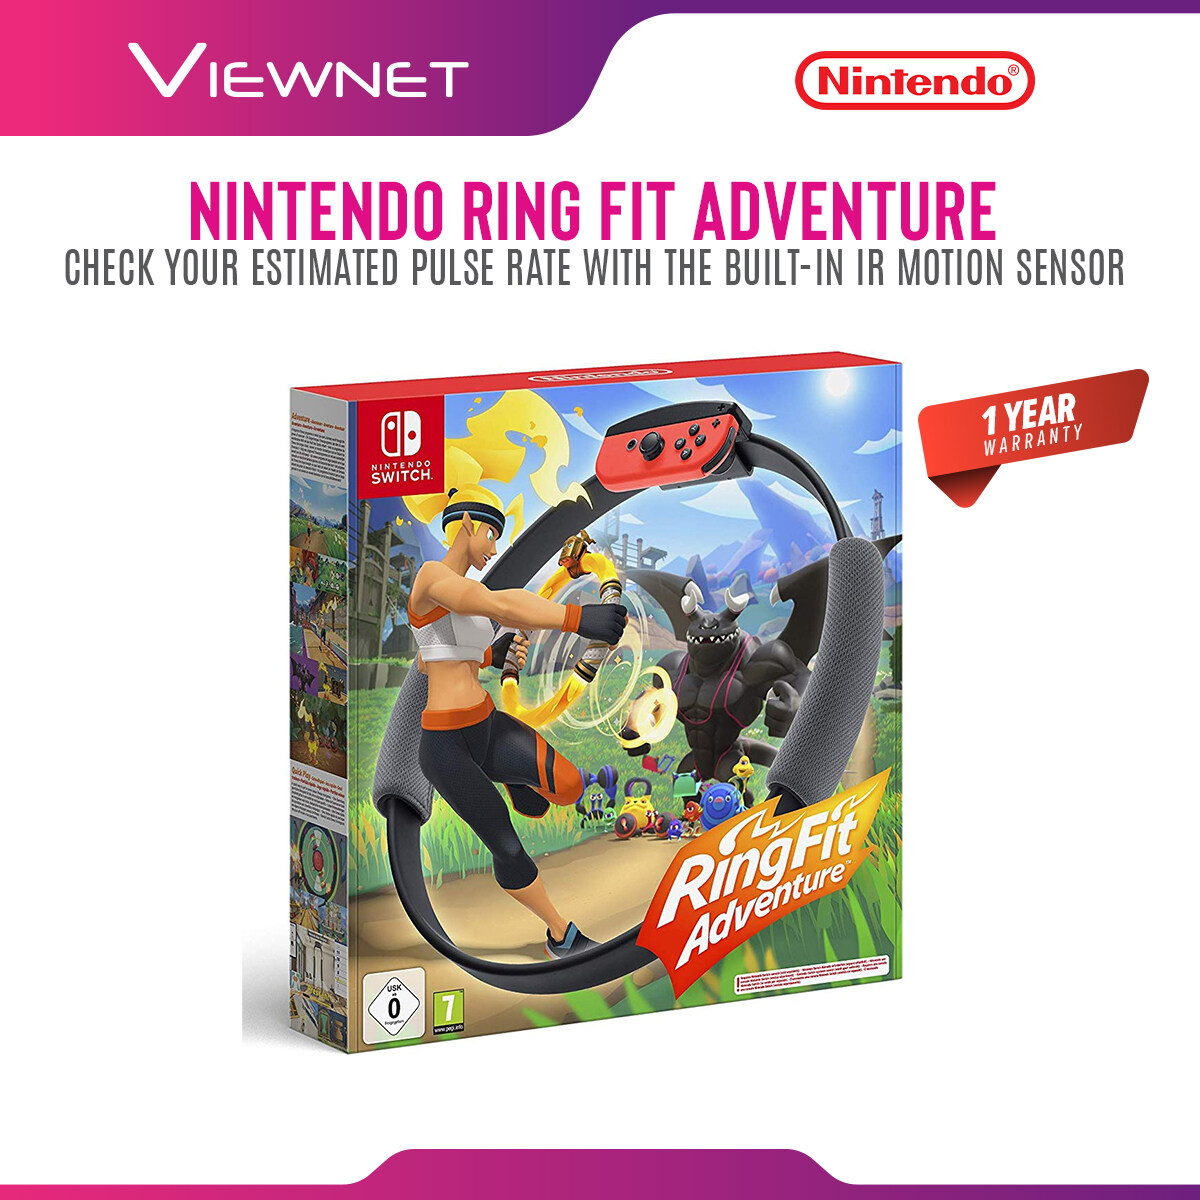 Nintendo Switch Ring Fit Ringfit Adventure - Full set with GAME (English + Chinese Version)